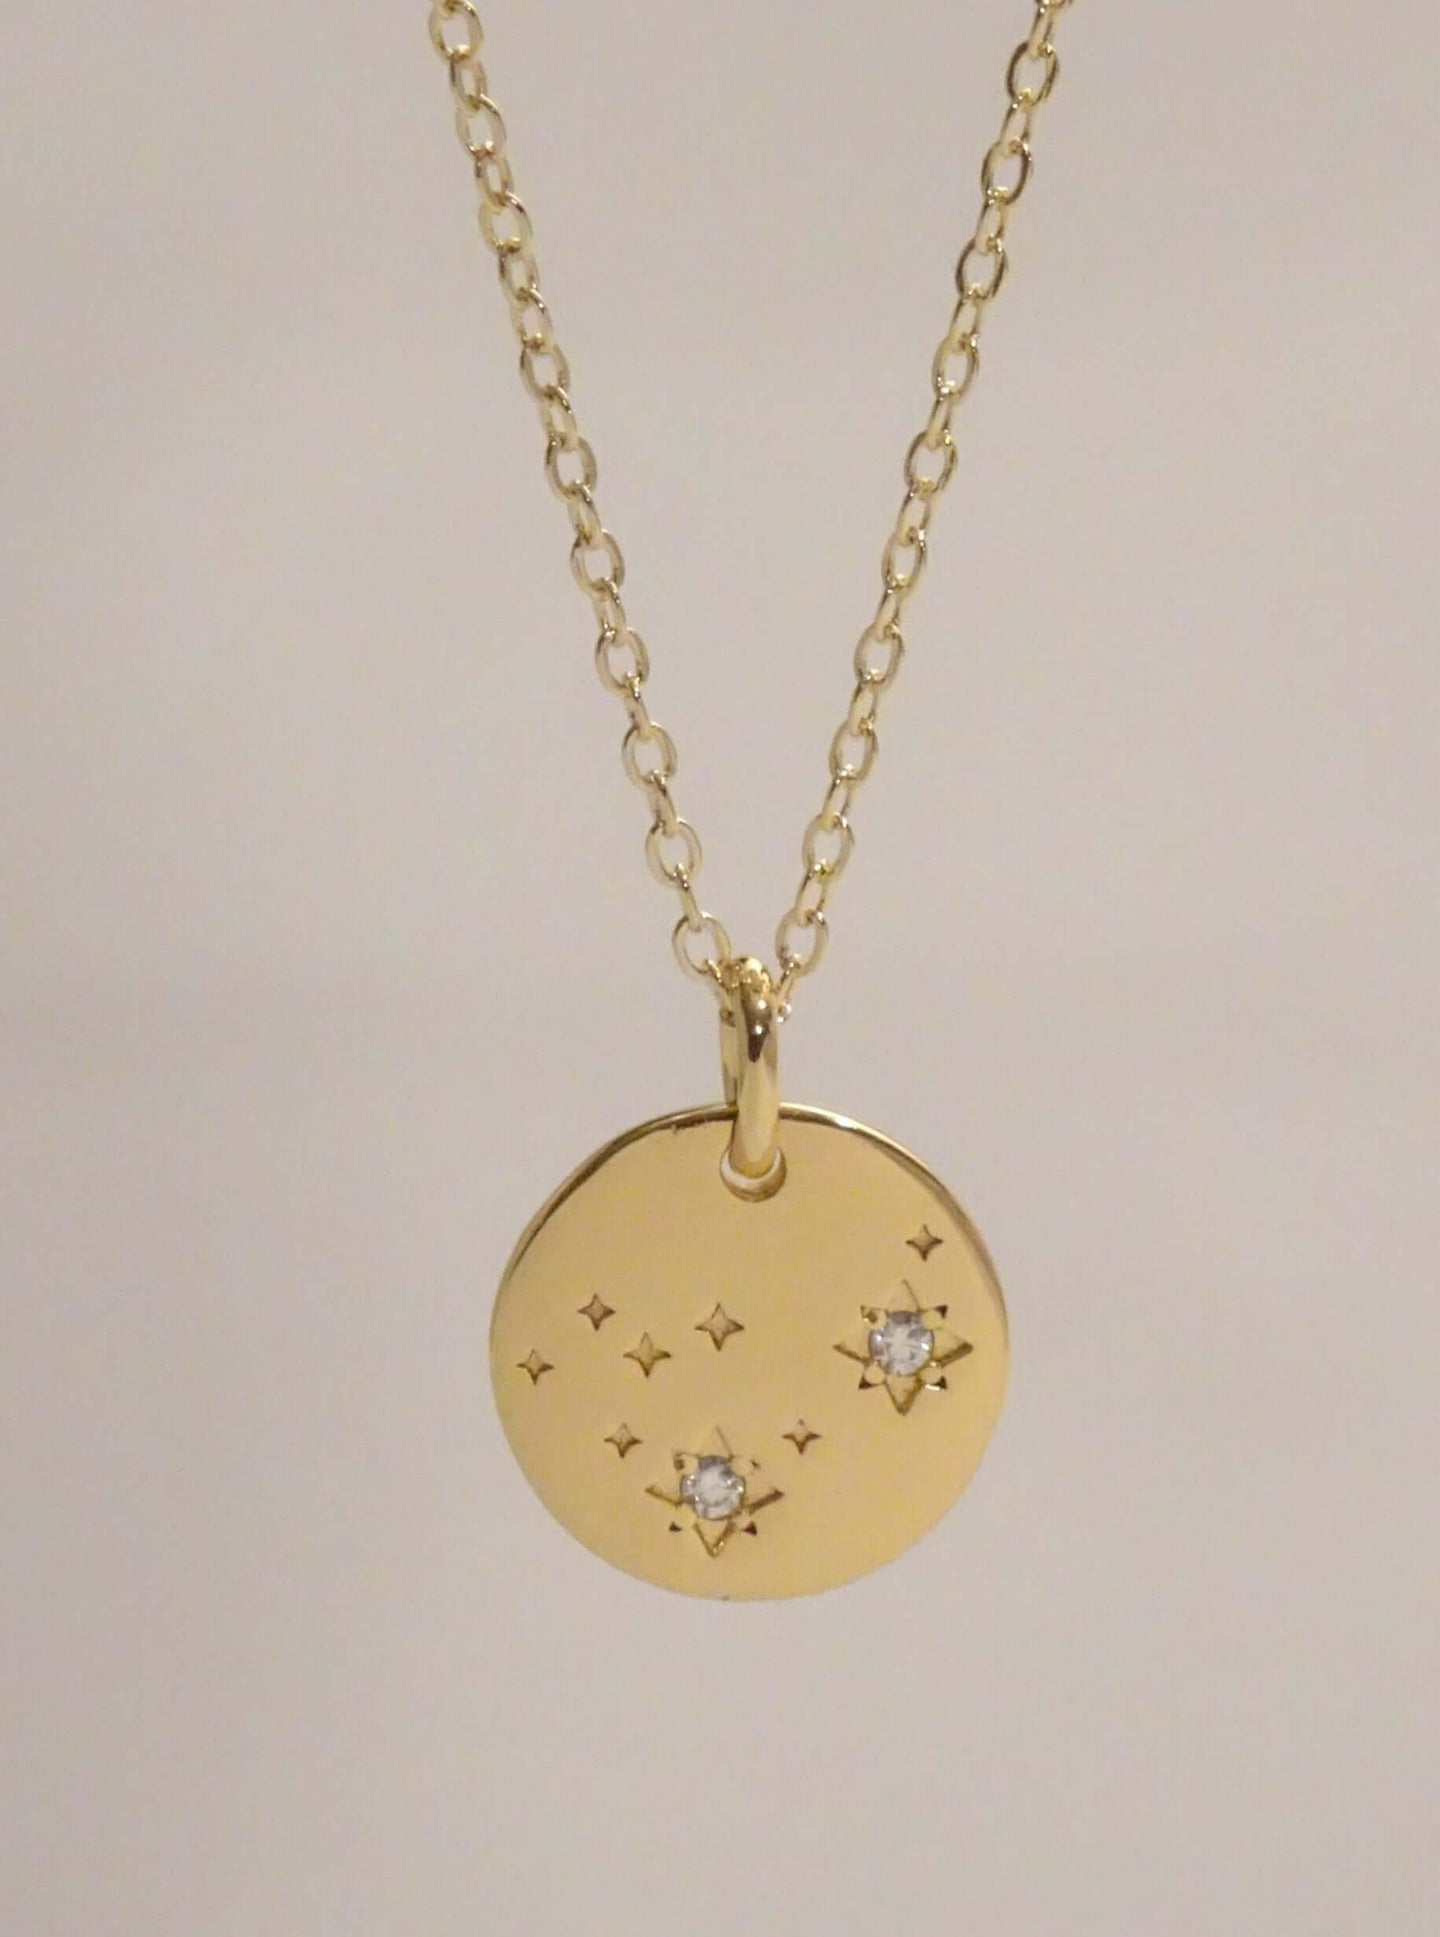 Capricorn necklace, Capricorn necklace gold, Capricorn zodiac necklace, Capricorn necklace for guys, Capricorn goat necklace, capricorn jewelry, capricorn jewelry for men, zodiac sign necklace, zodiac pendant necklace, zodiac constellation necklace